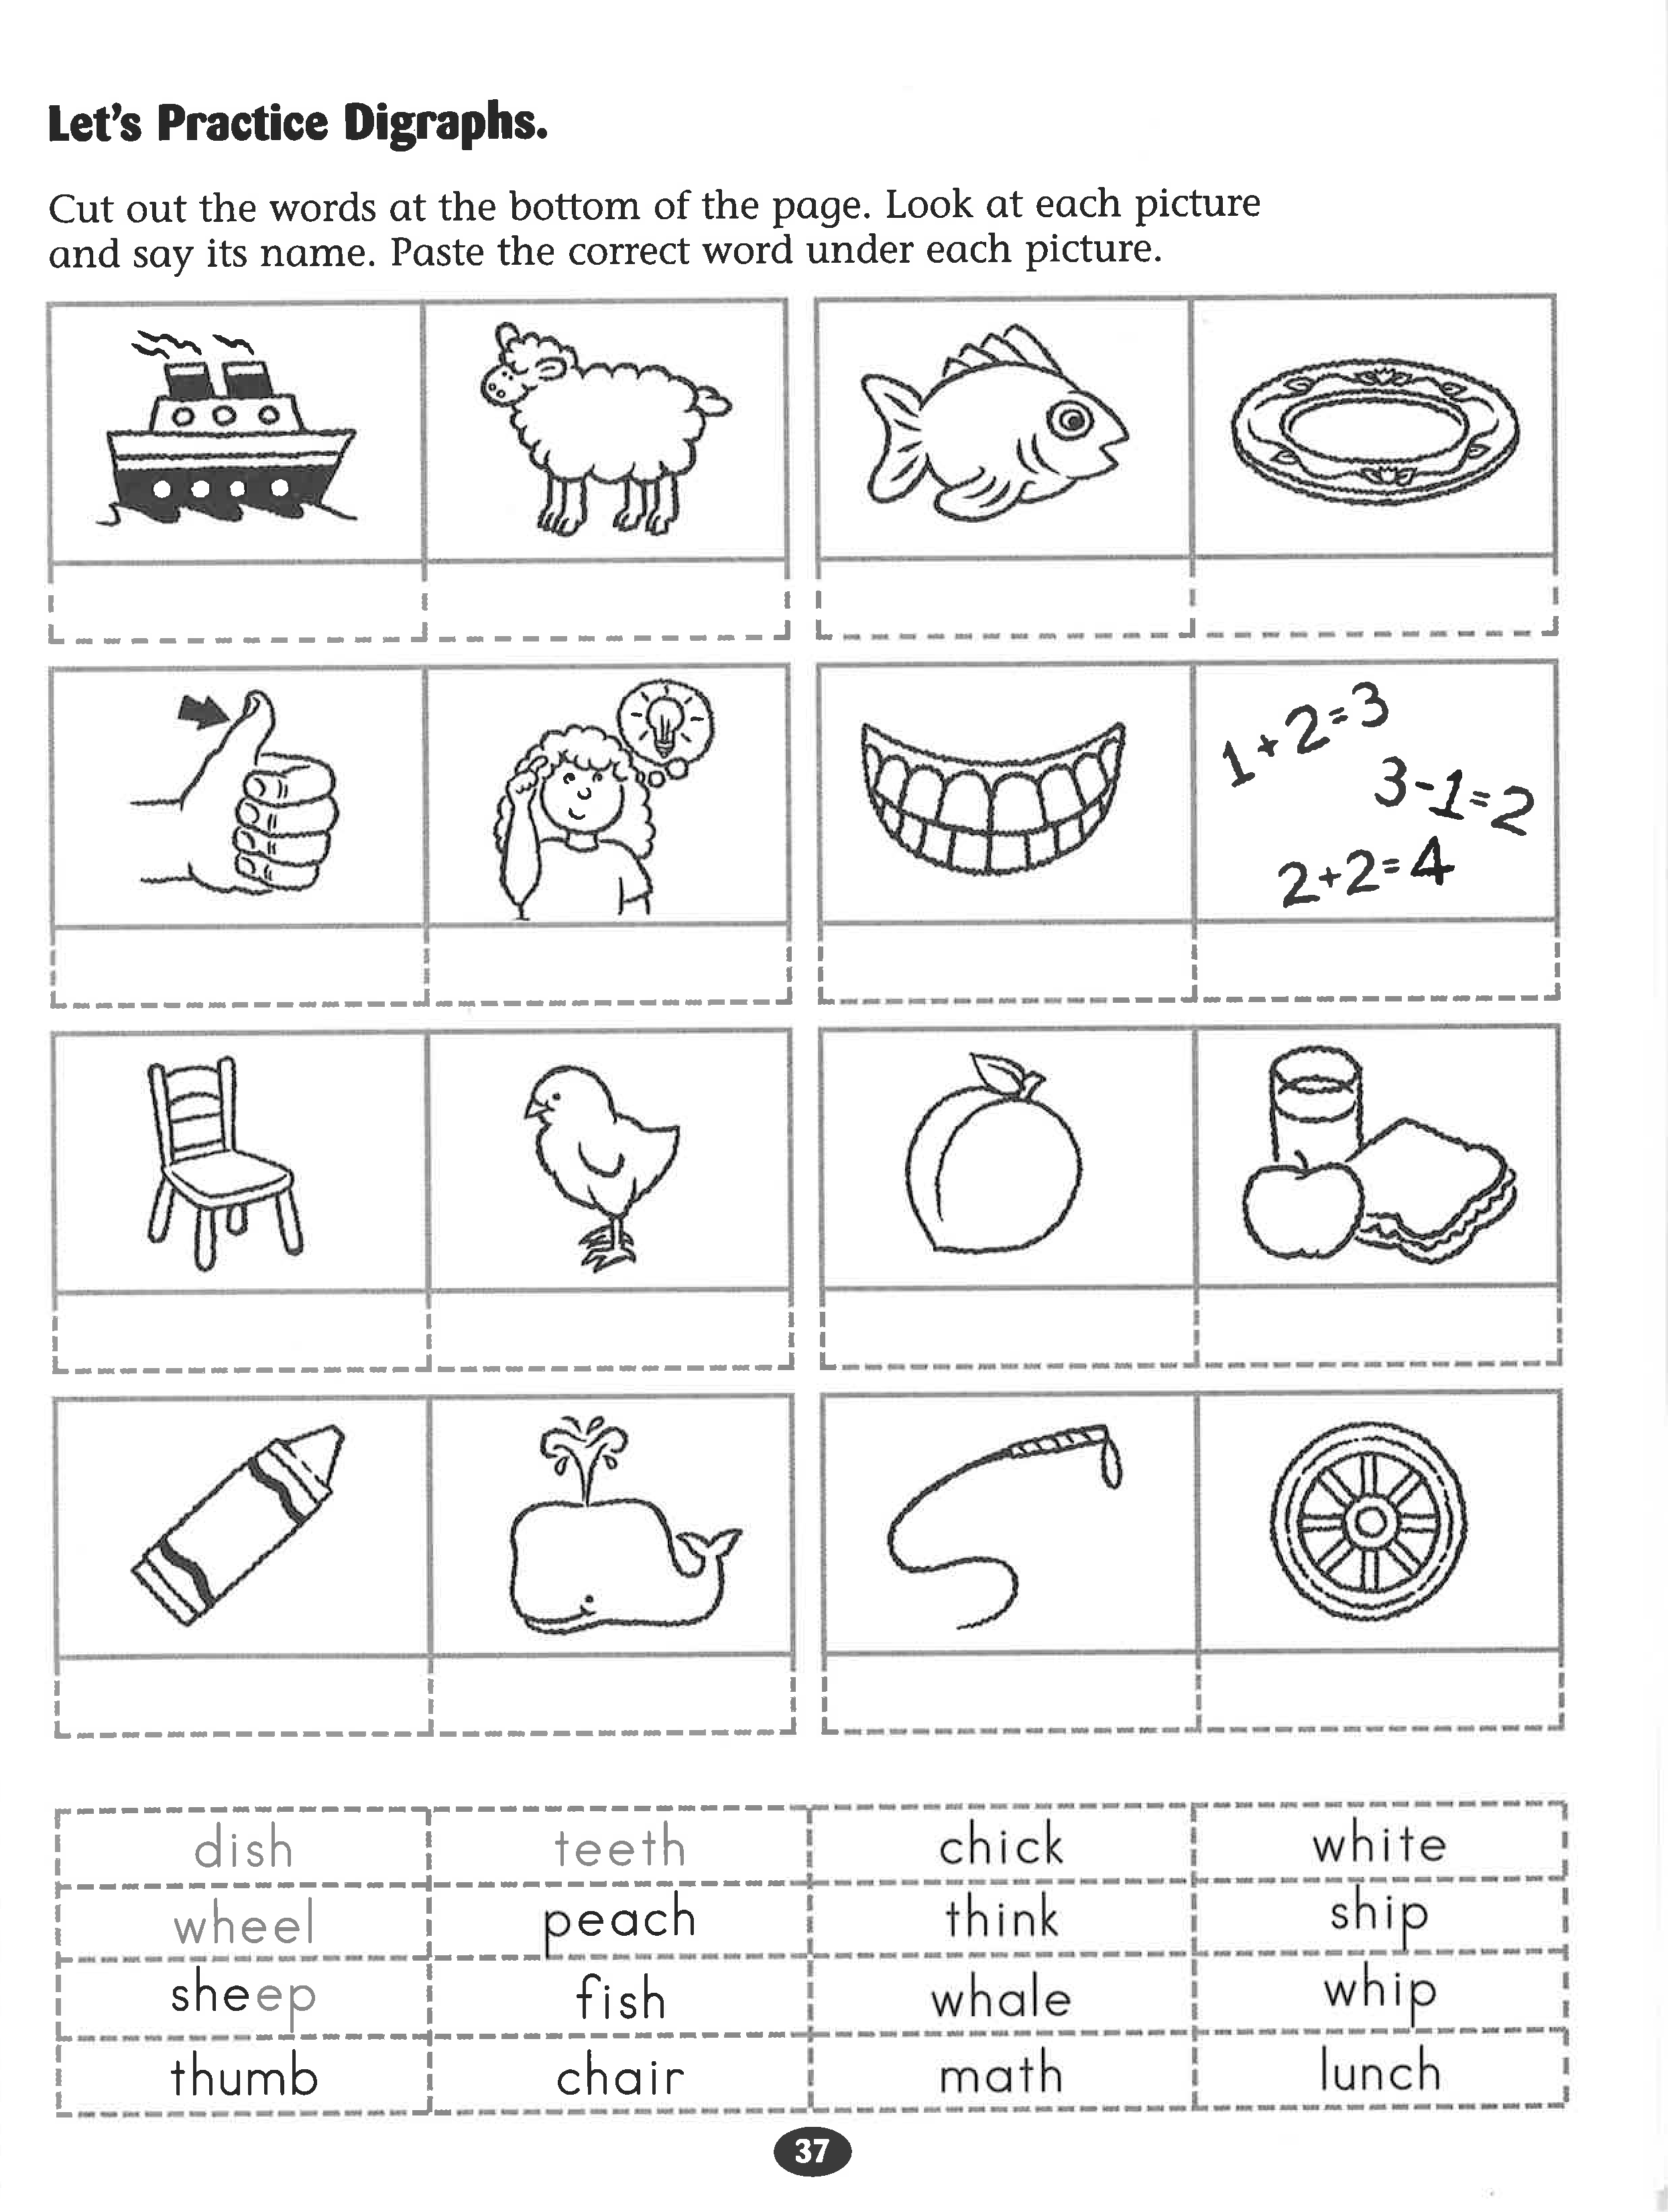 Let S Practice Digraphs Worksheet